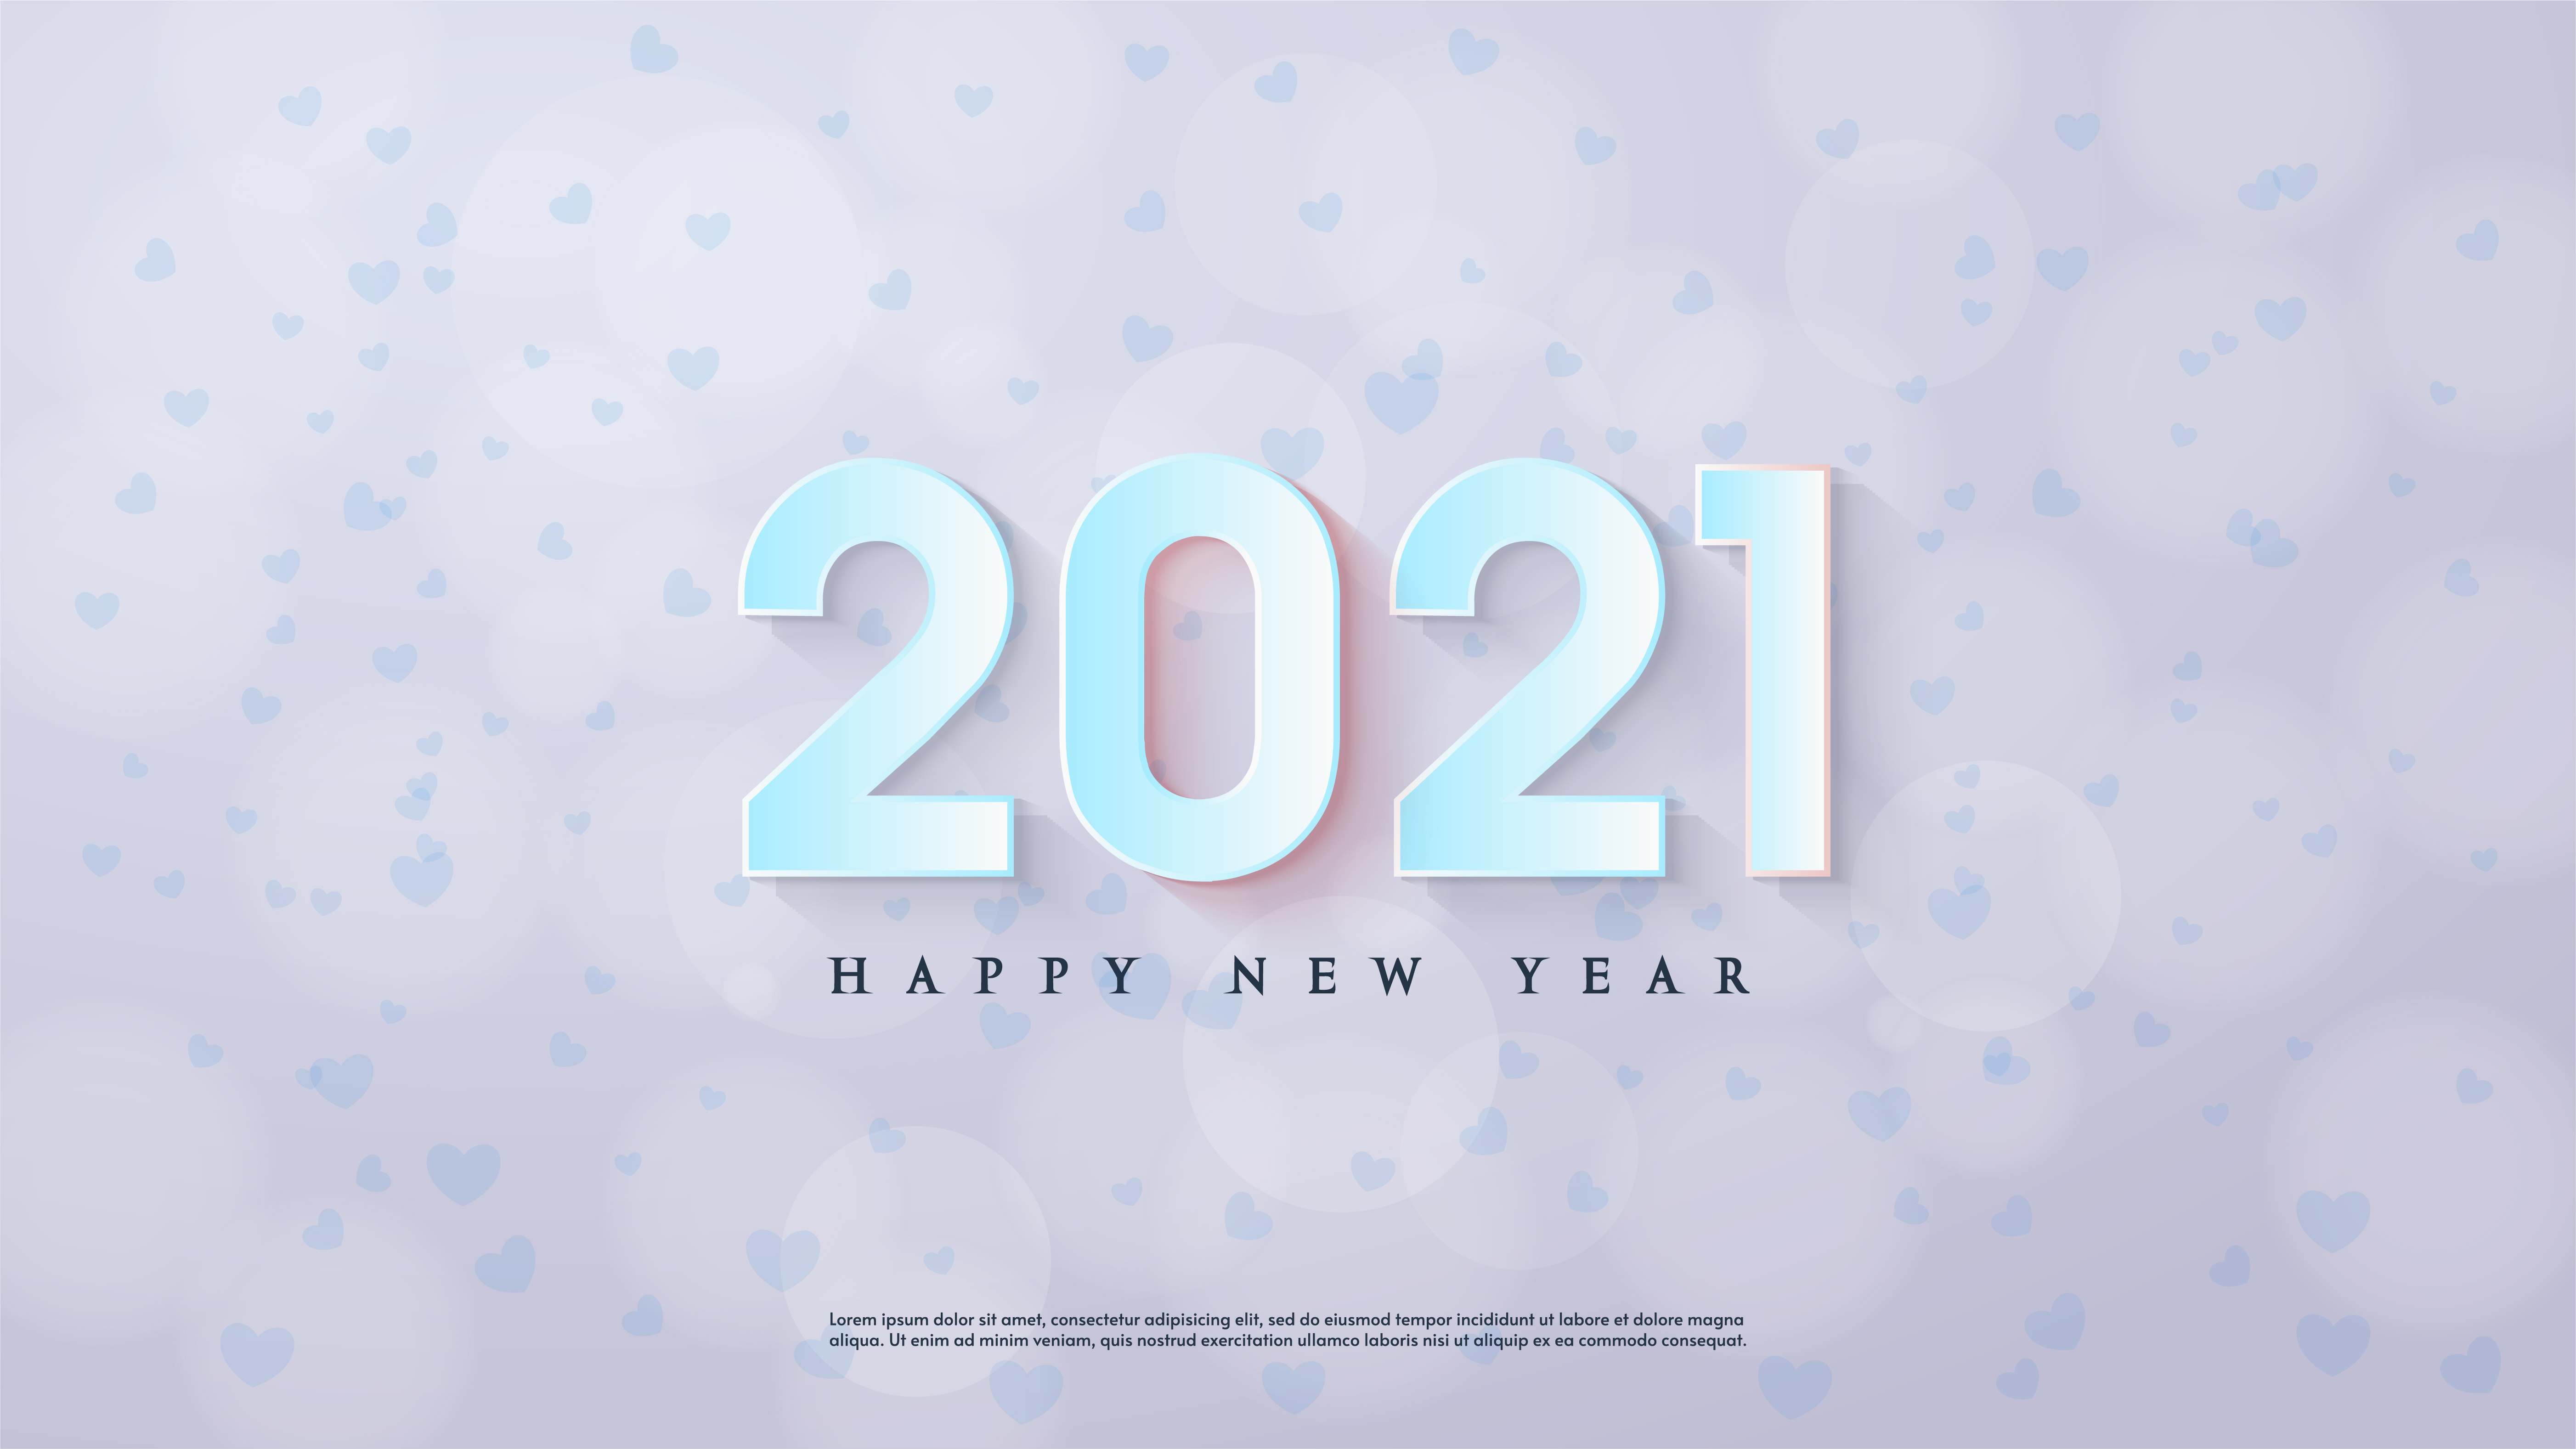 happy new year background 2021 with 3d blue numbers download free vectors clipart graphics vector art vecteezy